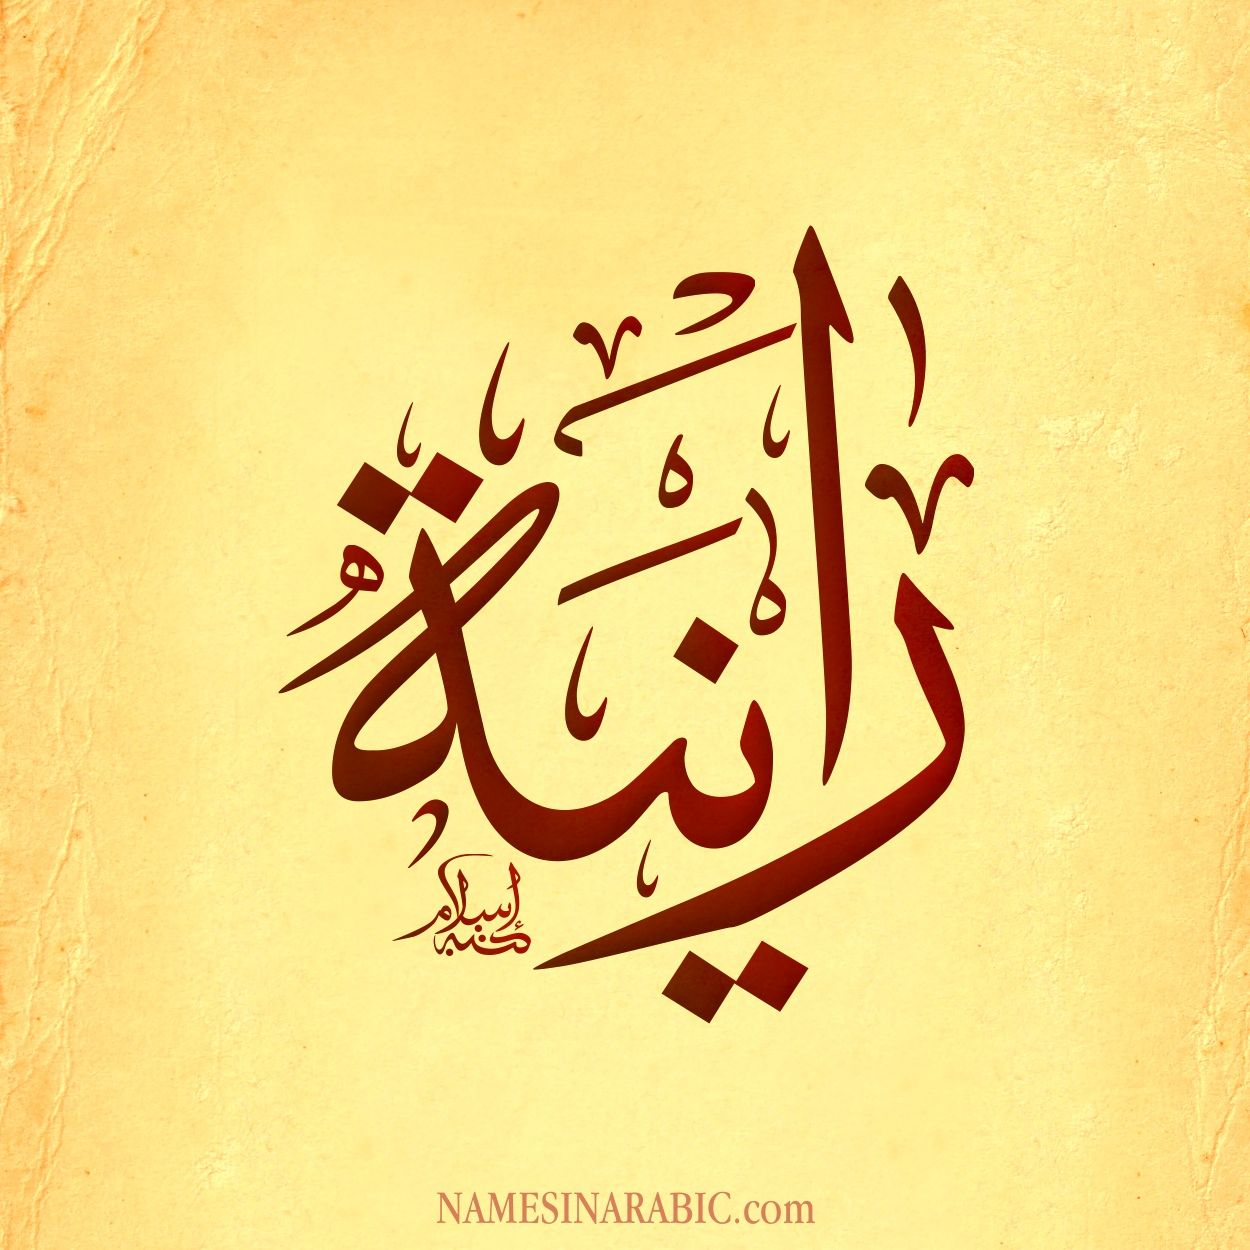 Image Result For رانيا مزخرف Arabic Calligraphy Art Image